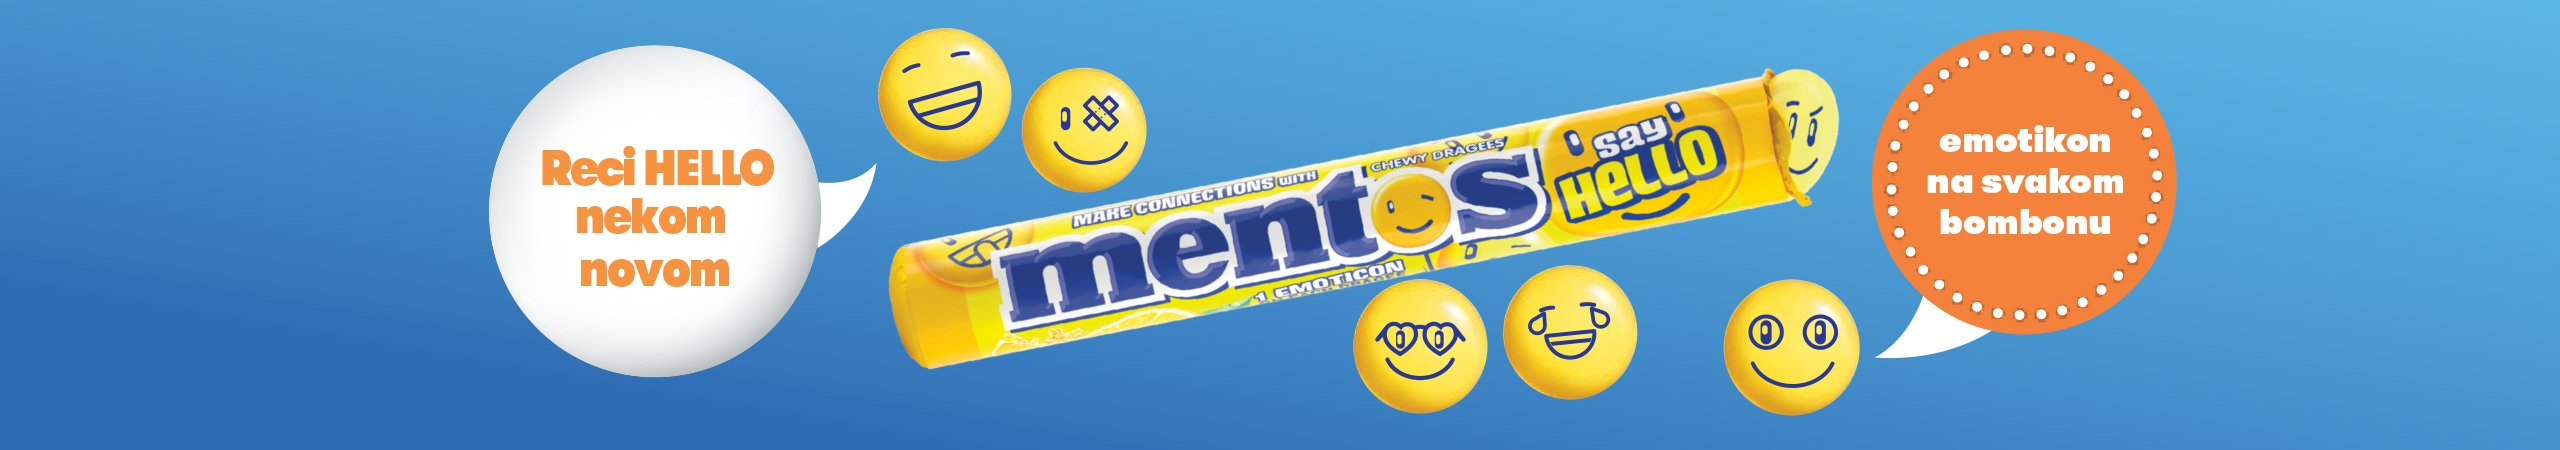 Mentos-say-hello-lemonade_banner-2_2